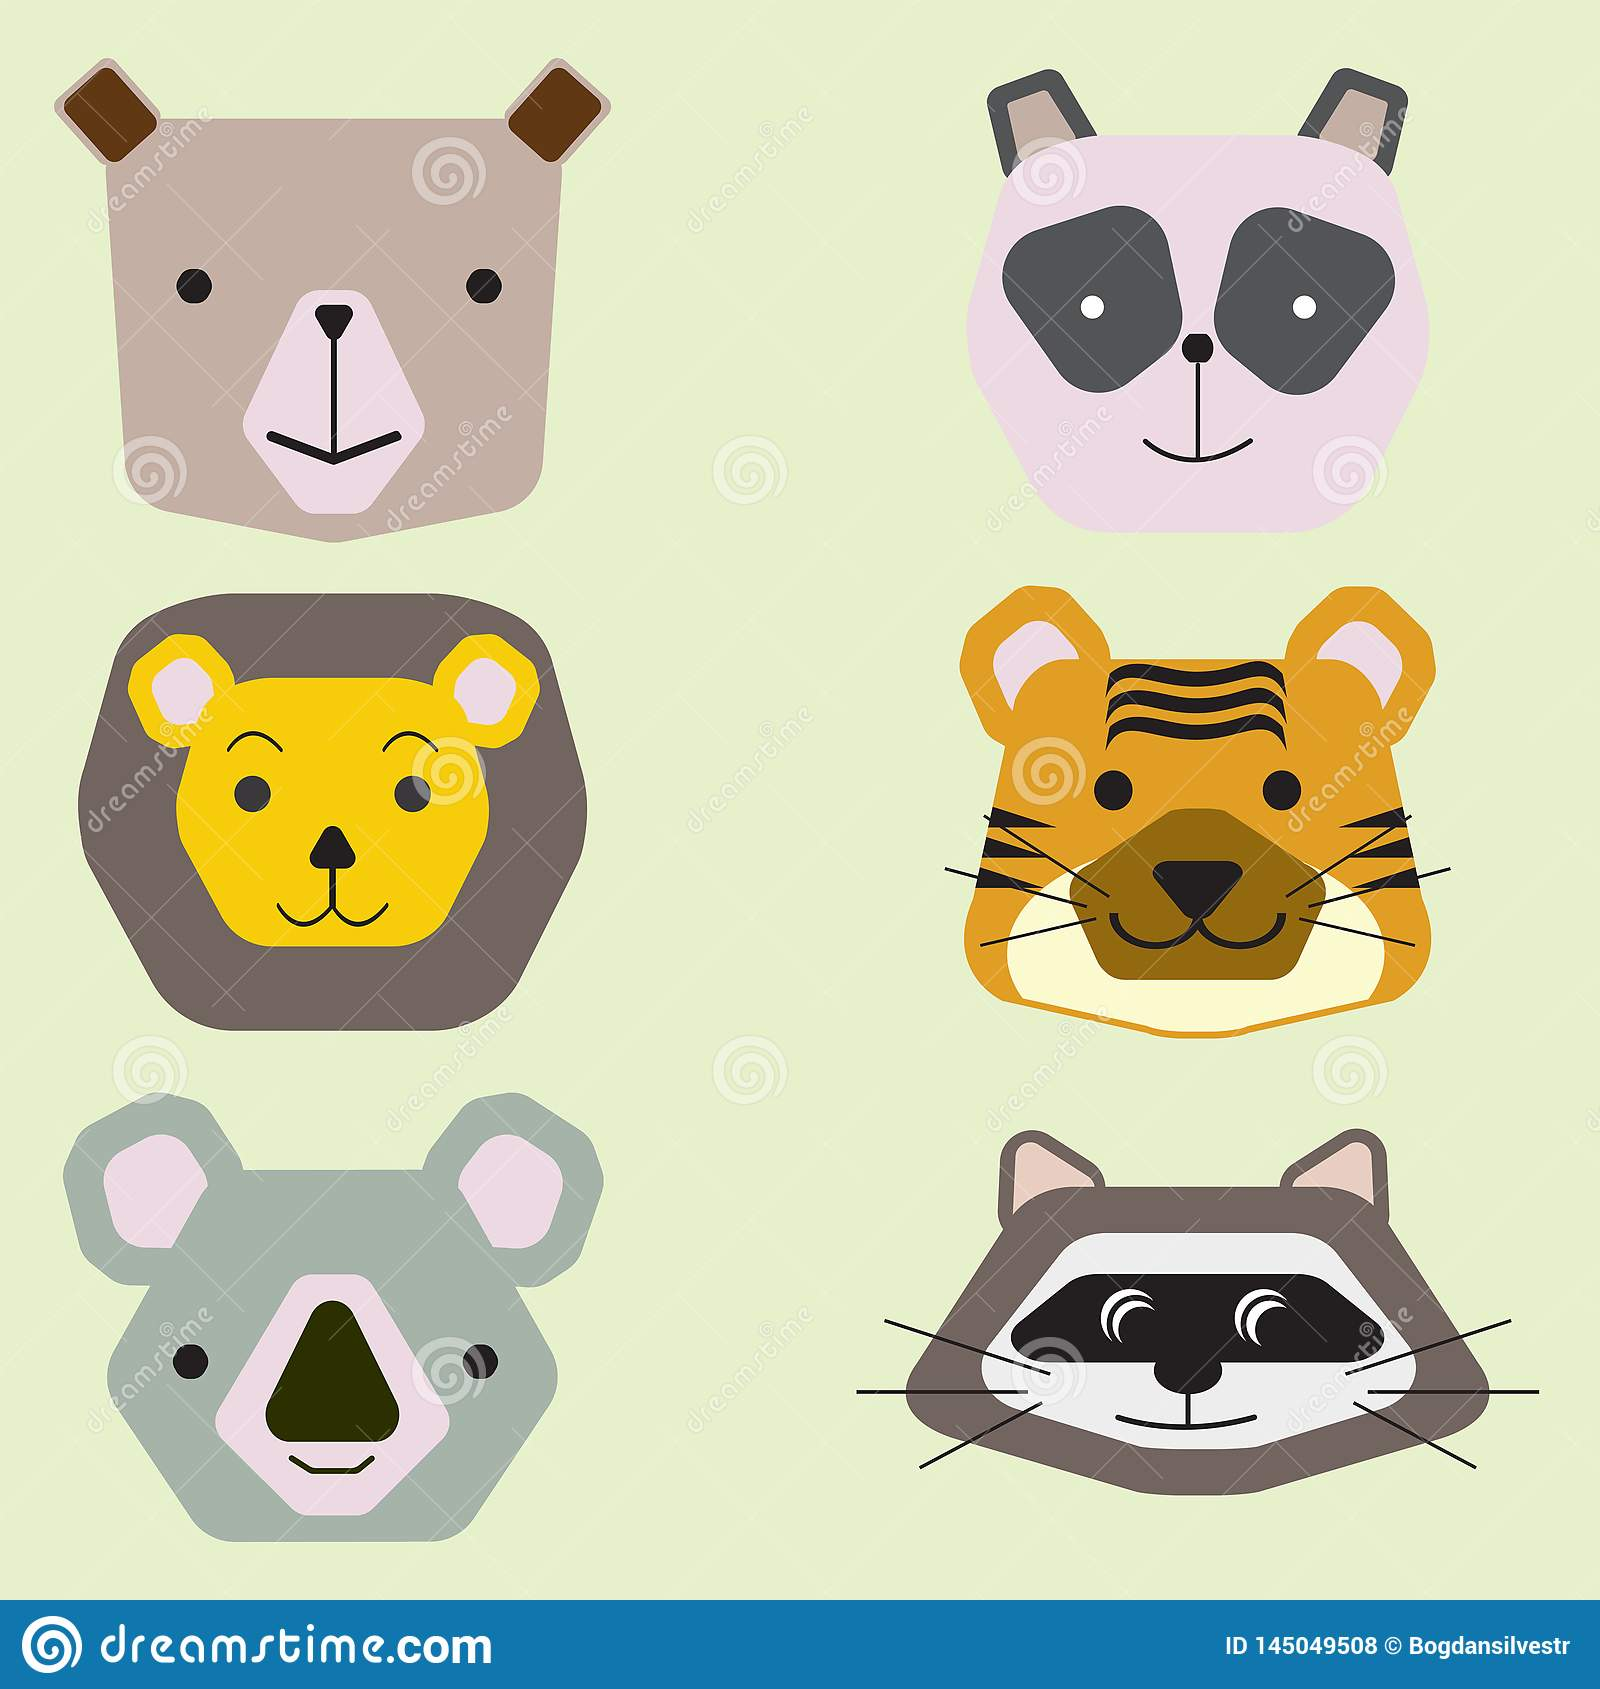 Vector collection of cute animal faces, icon set for baby design